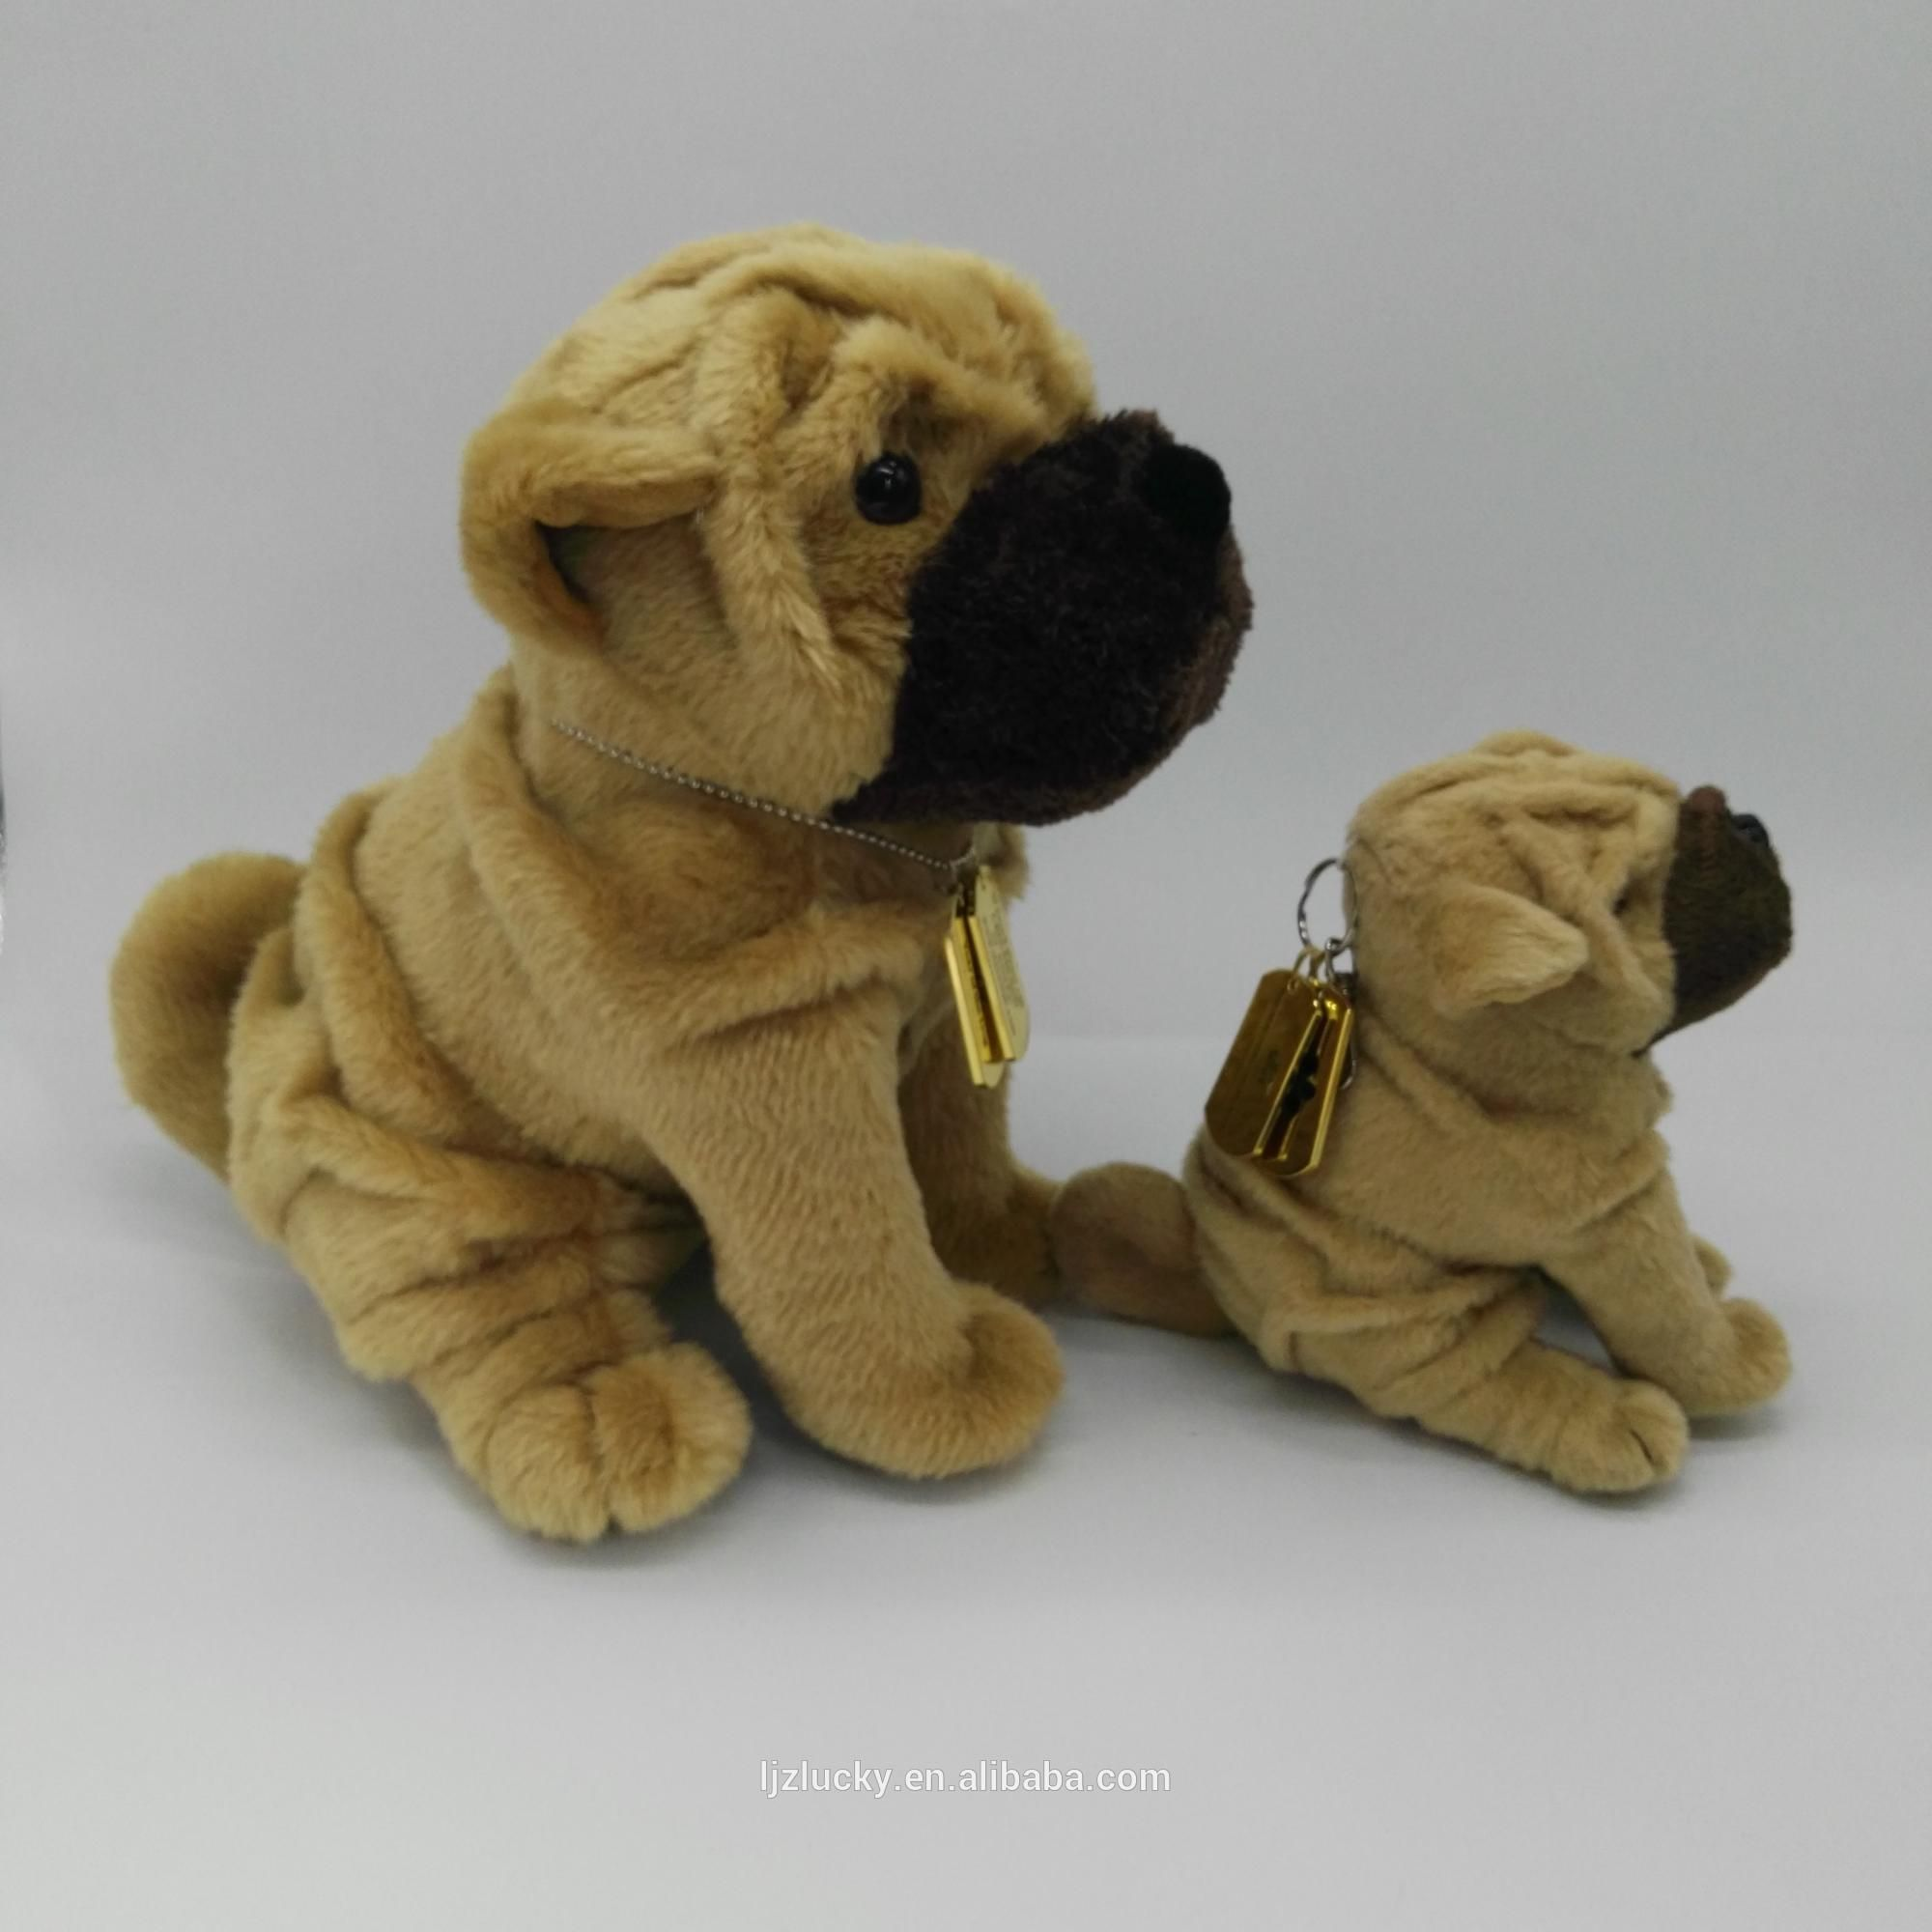 Factory Wholesale Soft And High Quality Plush Shar Pei Dog Stuffed